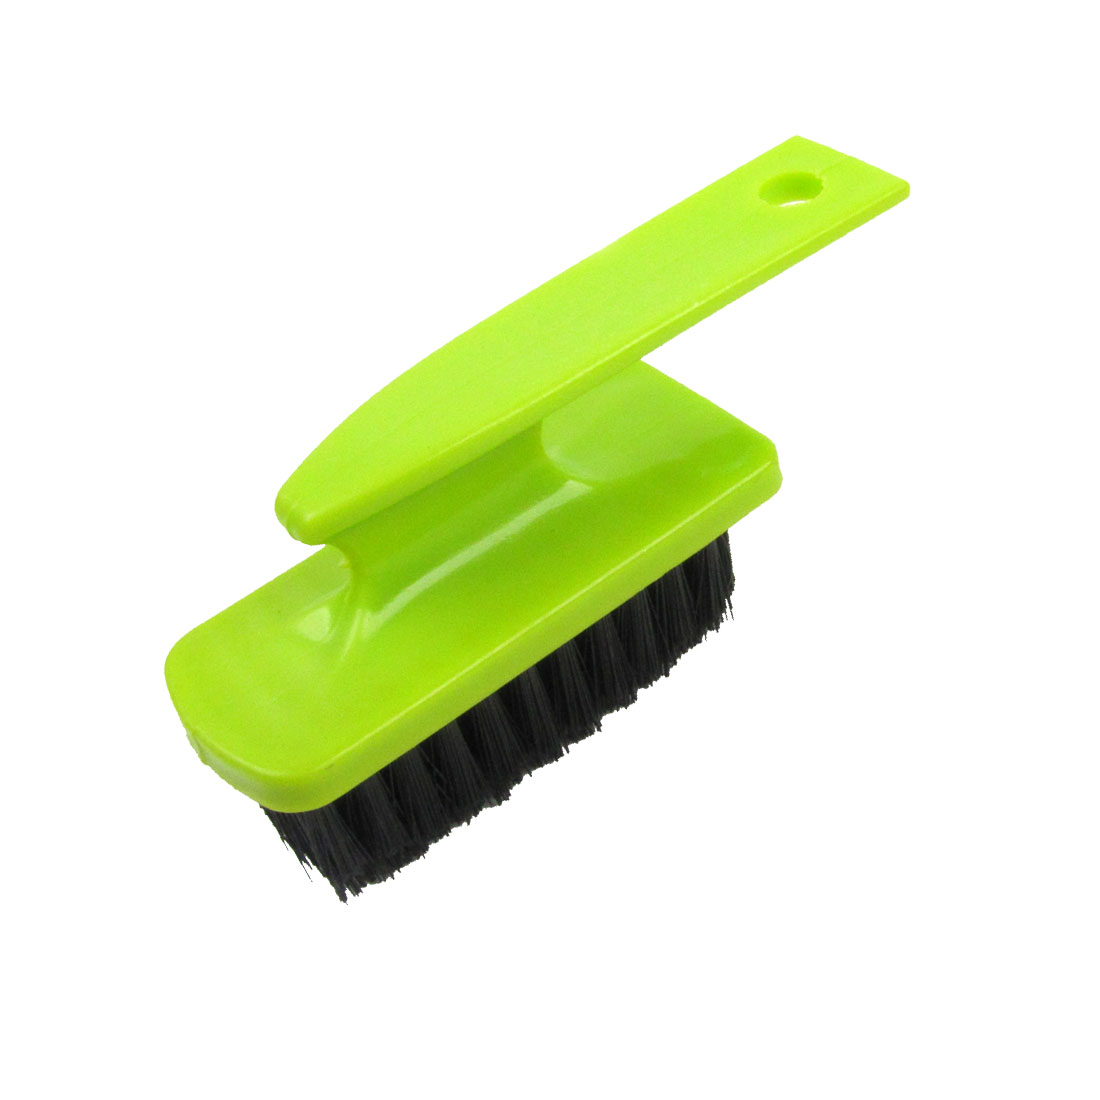 Green Plastic Handle Shoes Floor Clean Scrubbing Wash Brush Tool